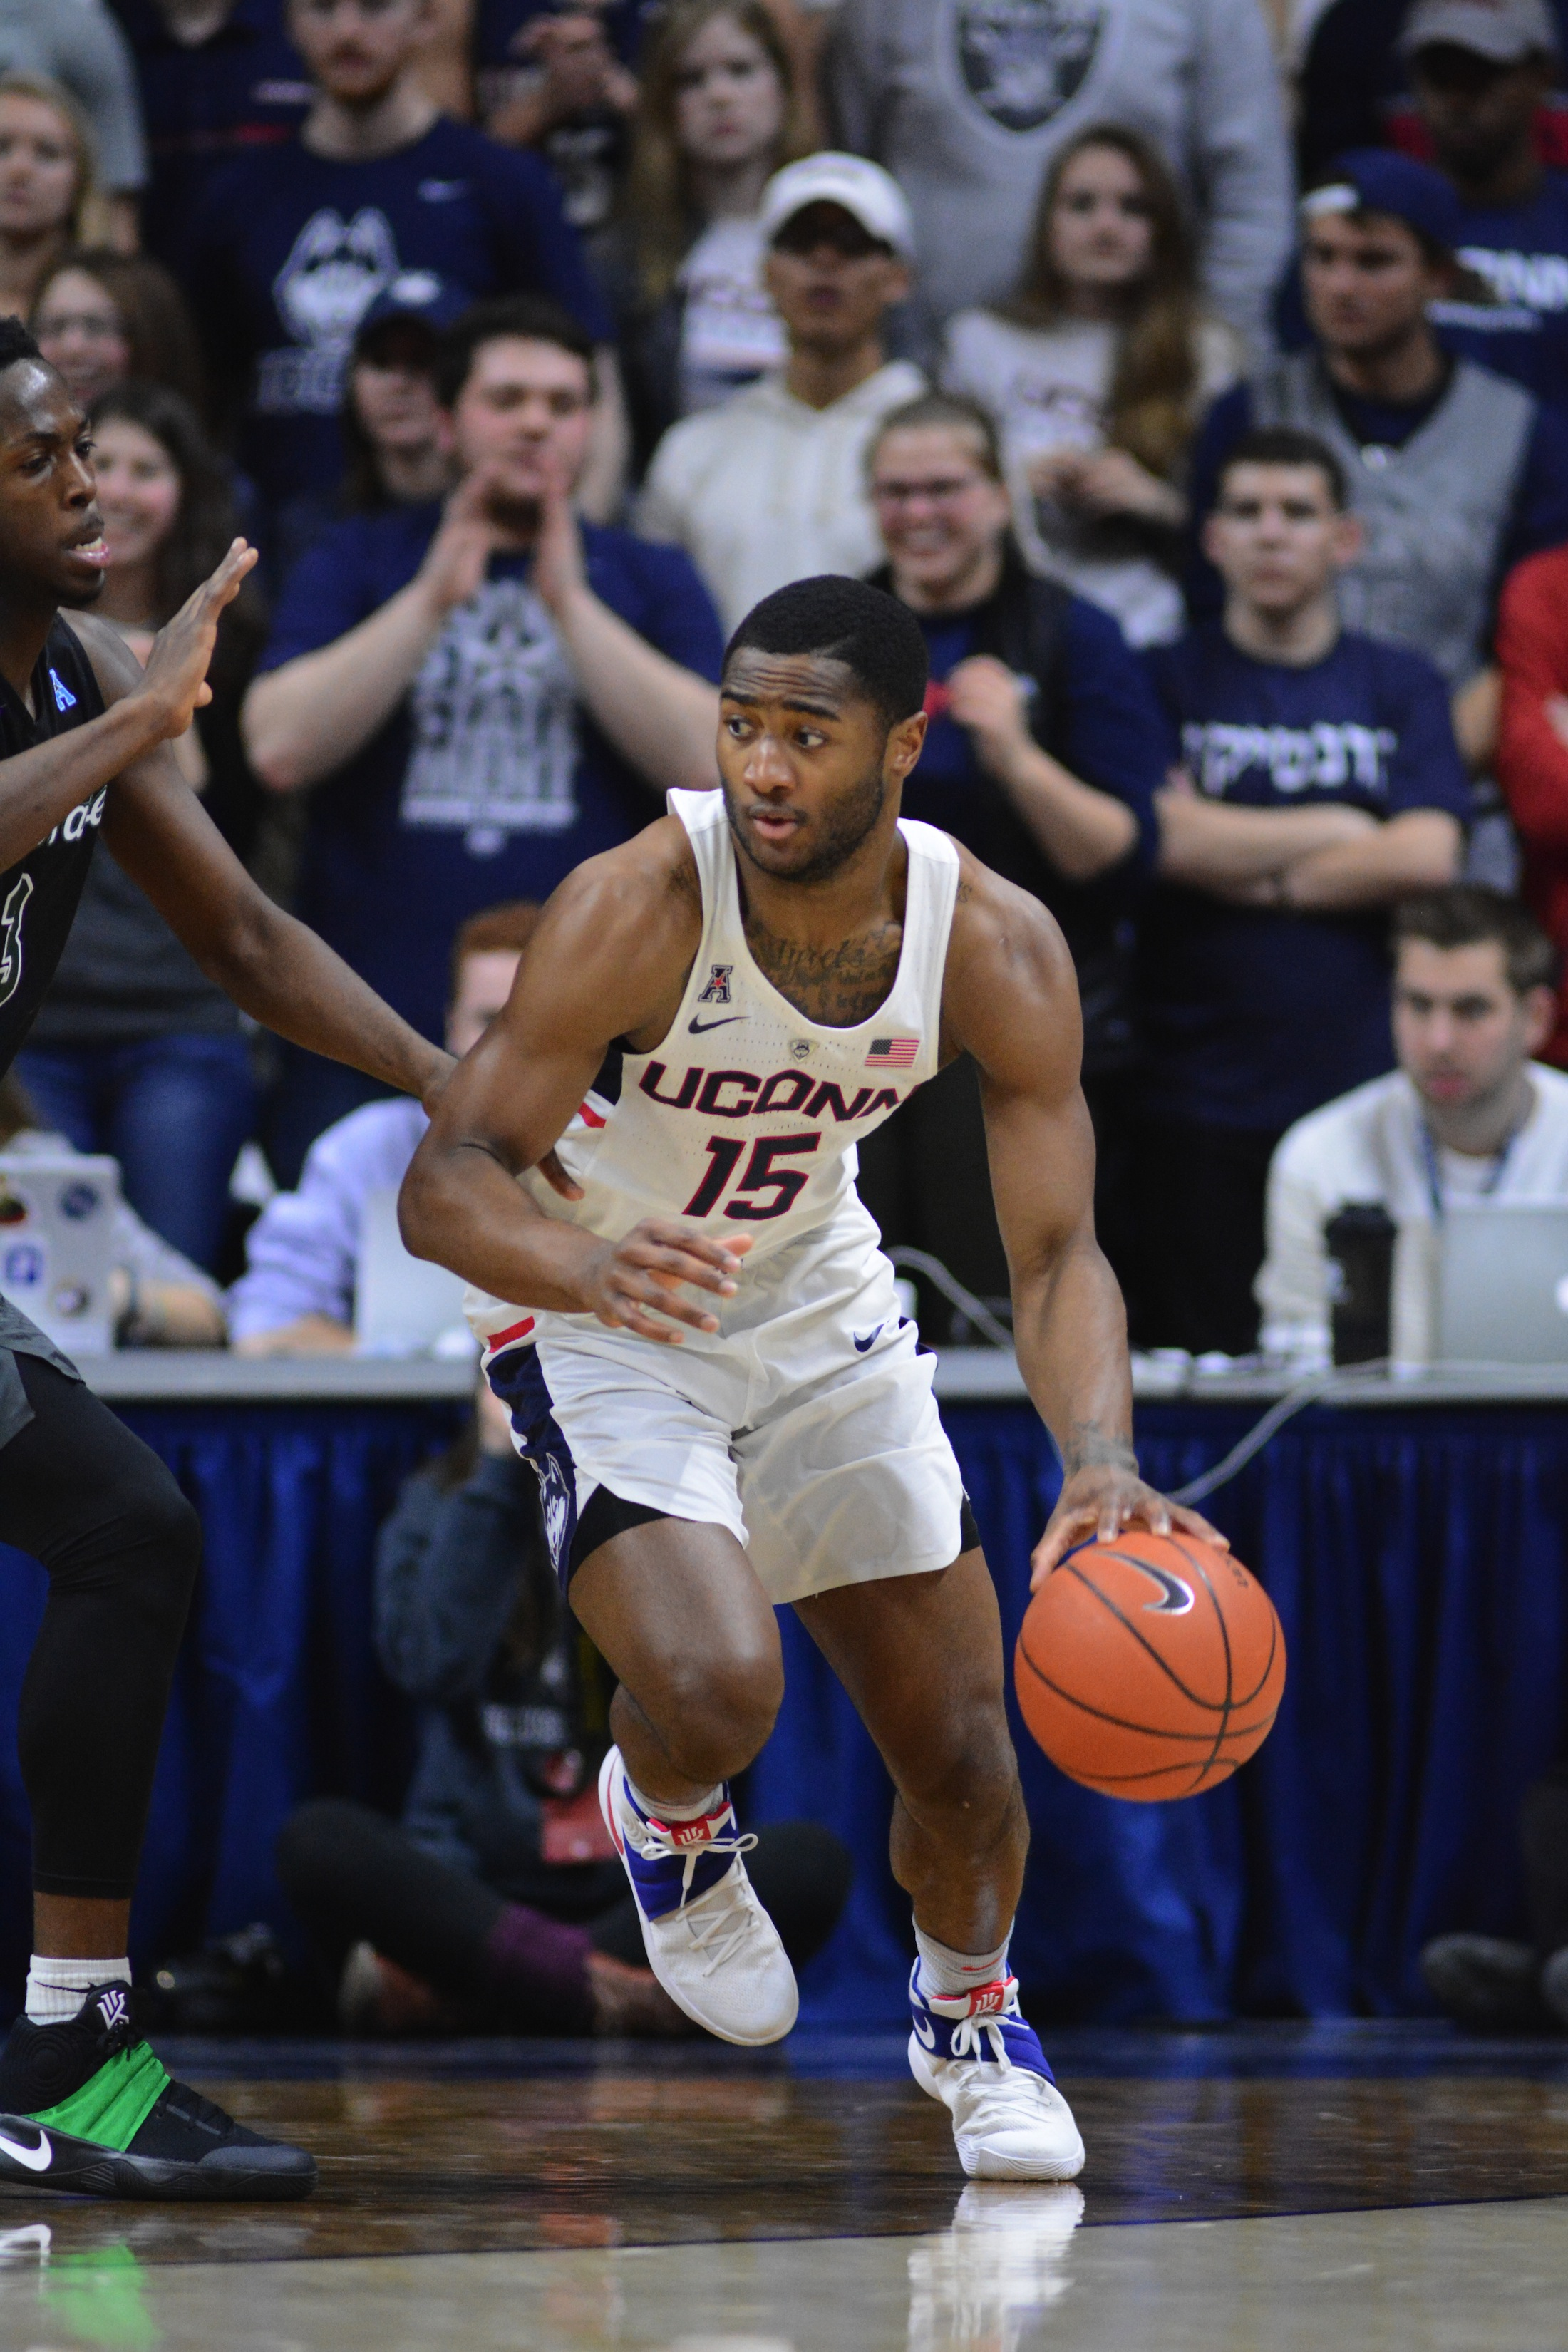 Rodney Purvis drives to the hoop in a January 28th, 2017 game against Tulane at Gampel Pavilion. (Jason Jiang/The Daily Campus)